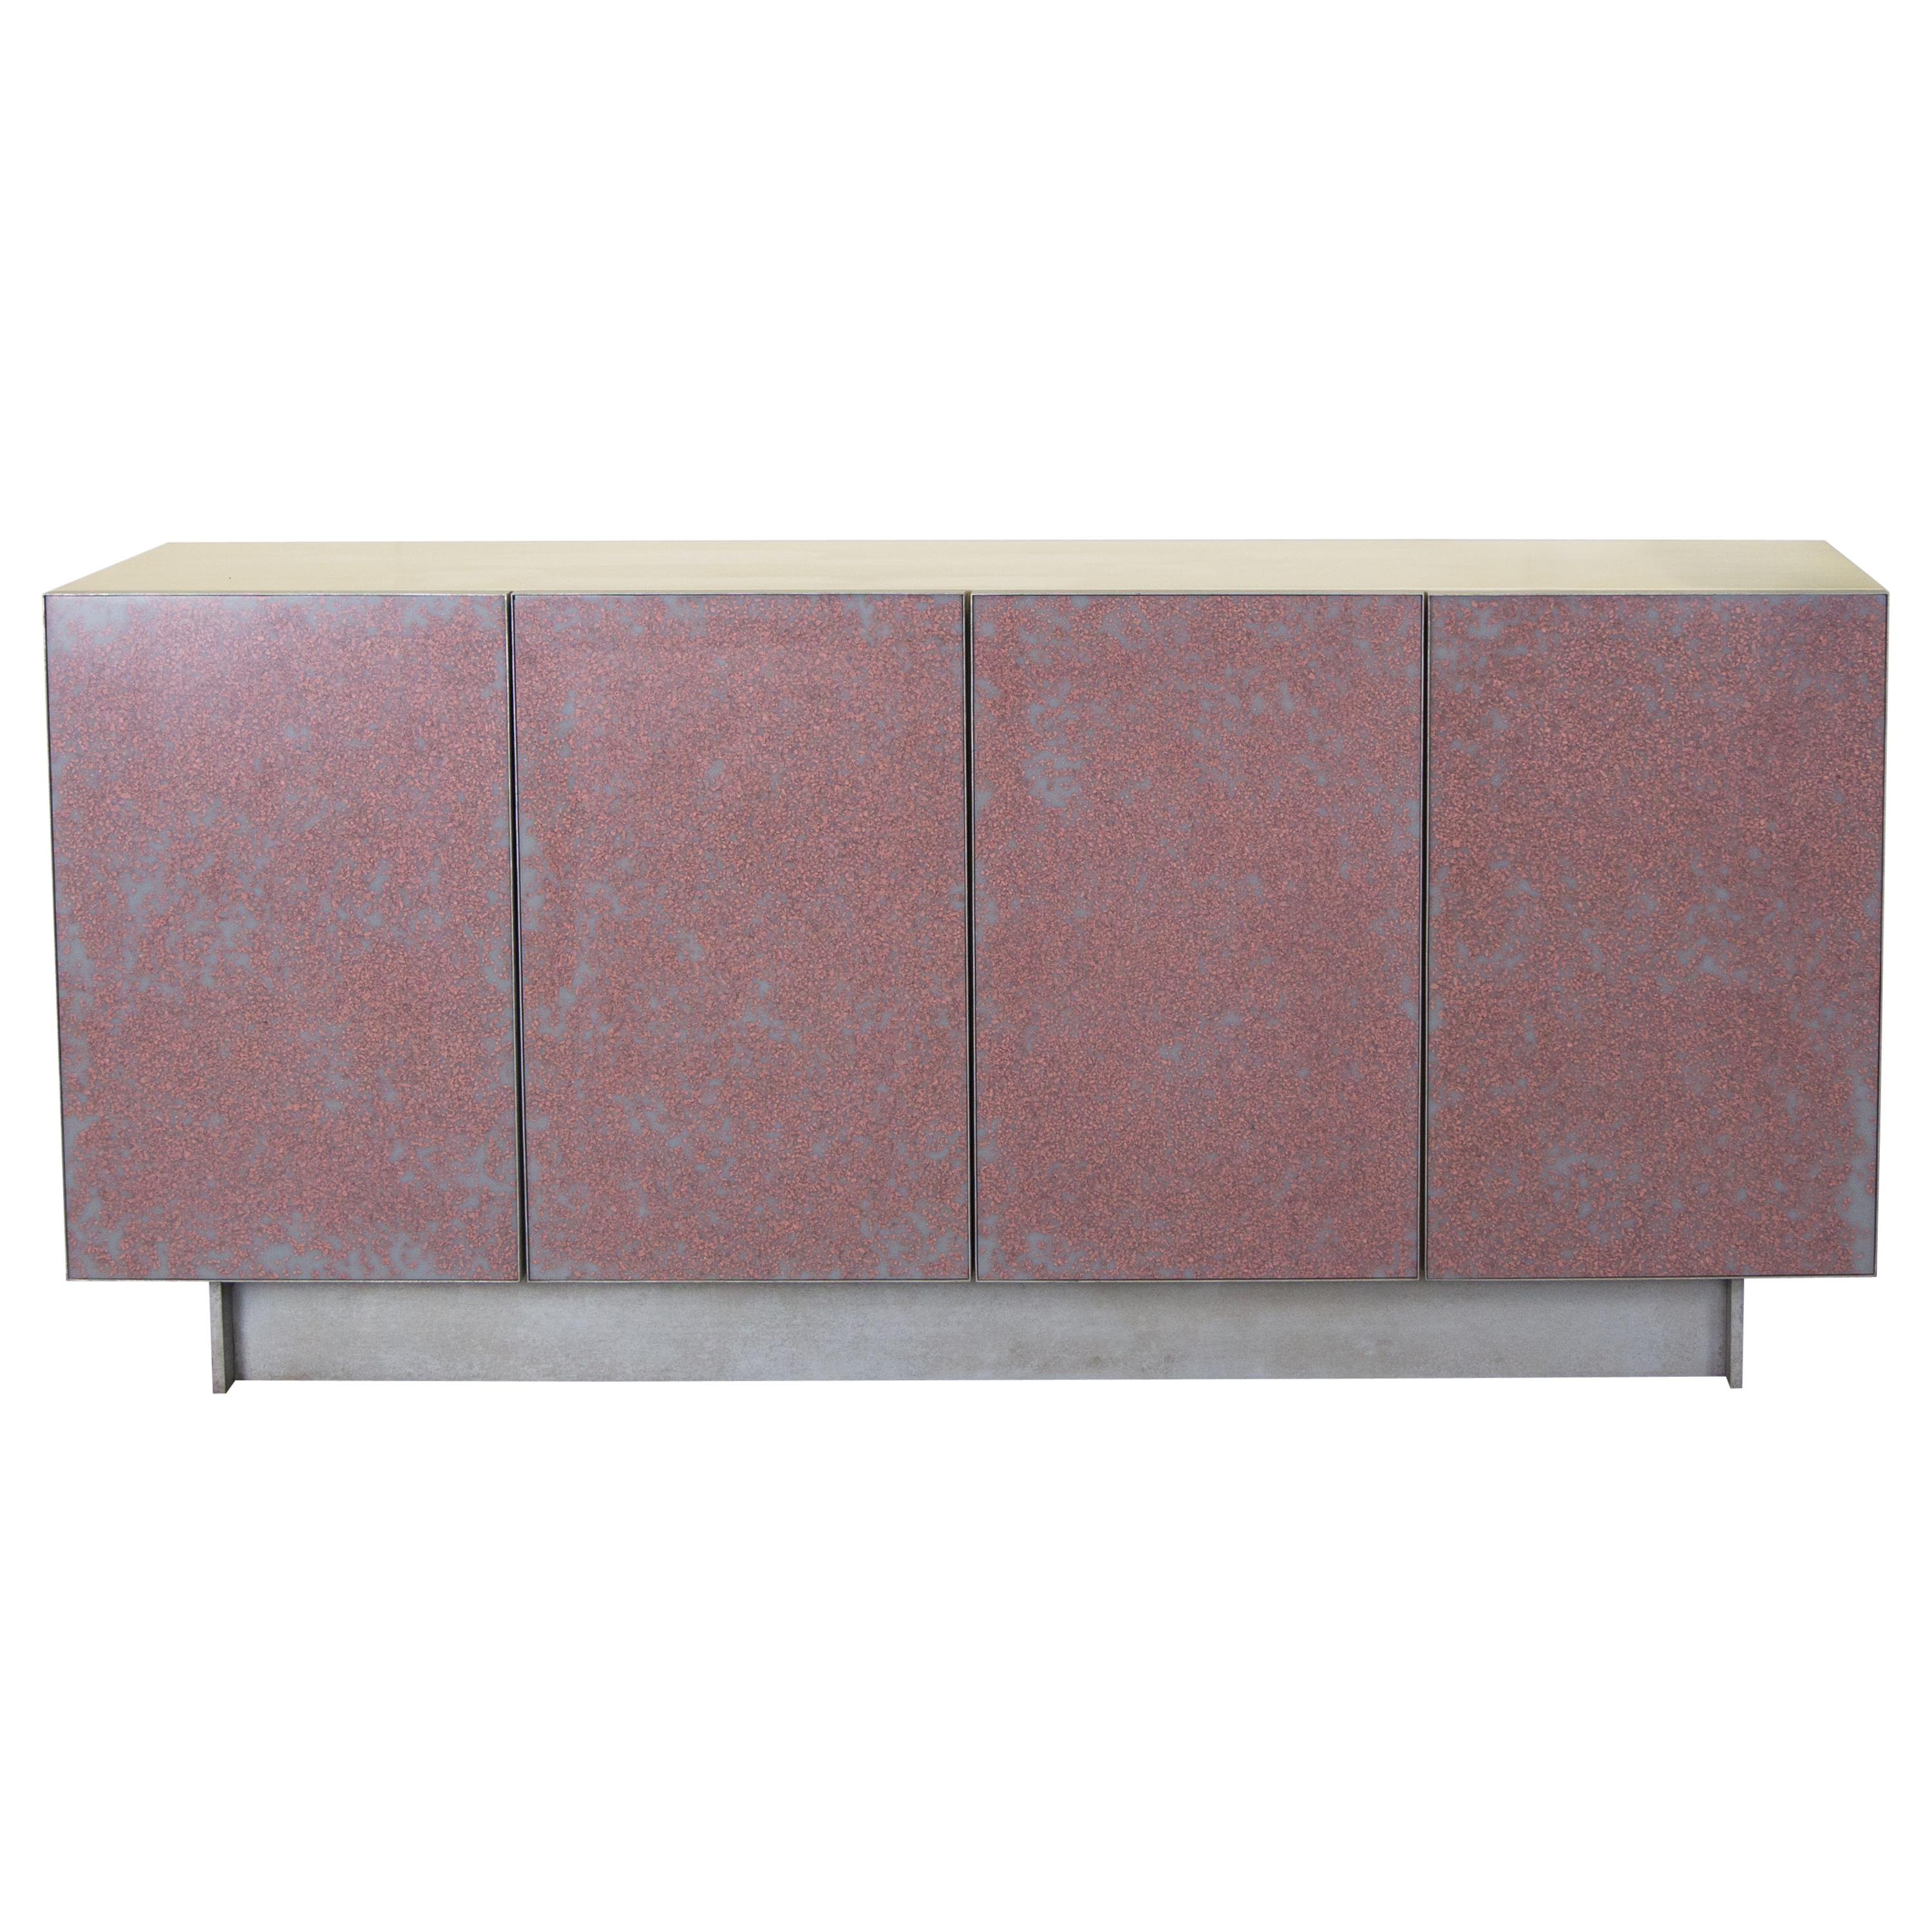 Gotham Credenza   Customizable Wood, Metal And Resin For ...